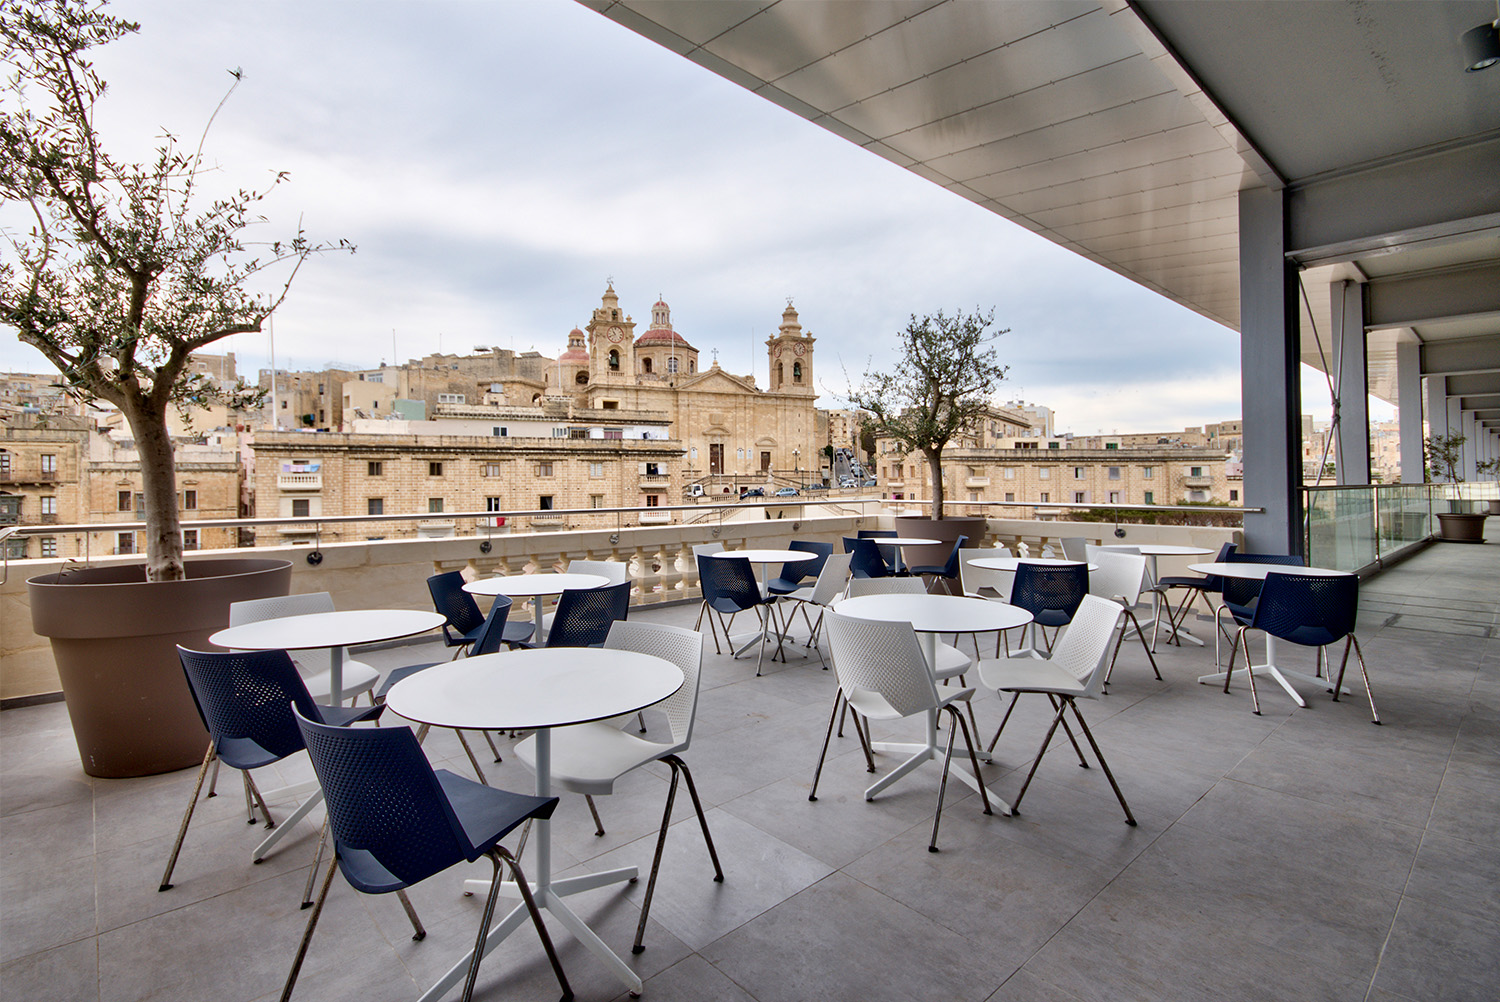 British Building Outdoor cafeteria Alan Carville